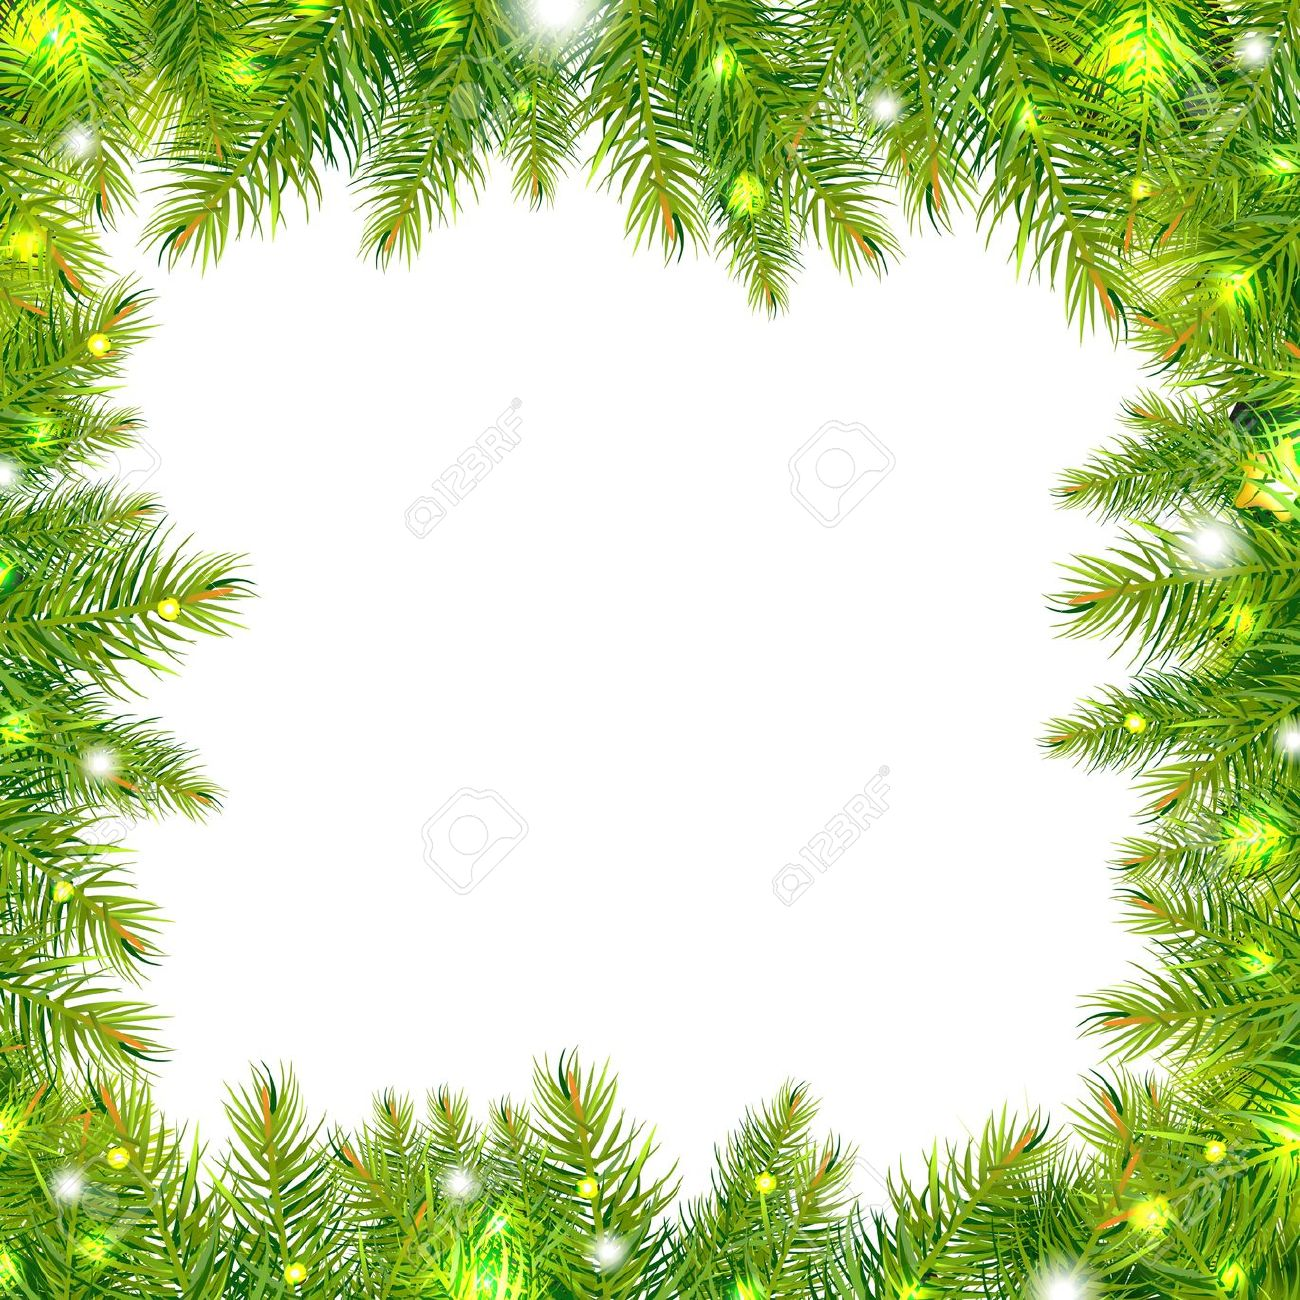 Horizontal Christmas Tree Border Clipart.